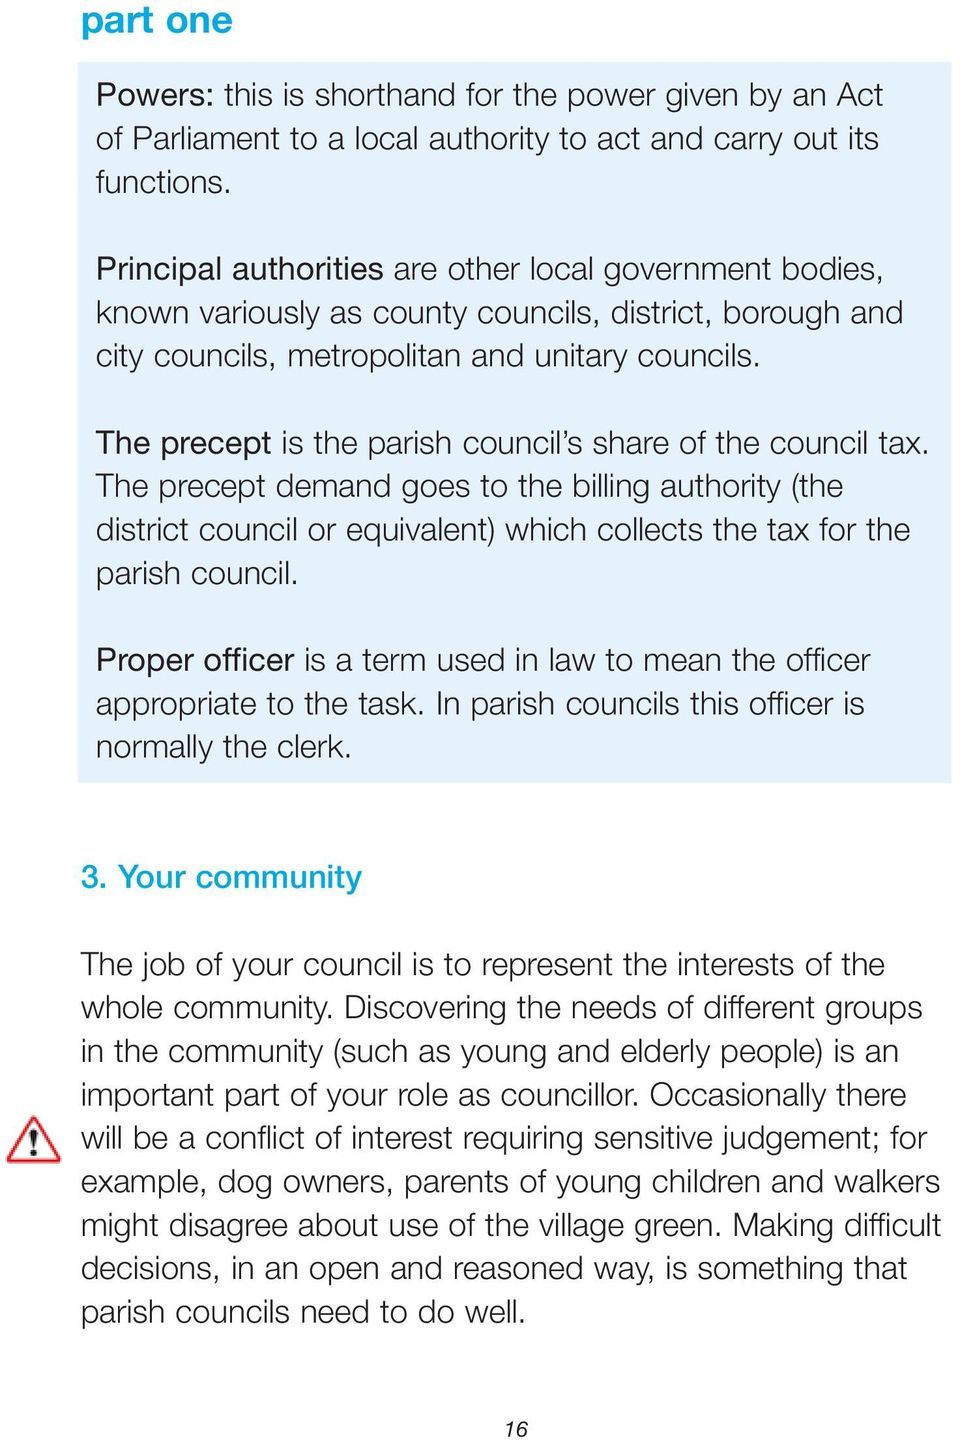 The precept is the parish council s share of the council tax. The precept demand goes to the billing authority (the district council or equivalent) which collects the tax for the parish council.